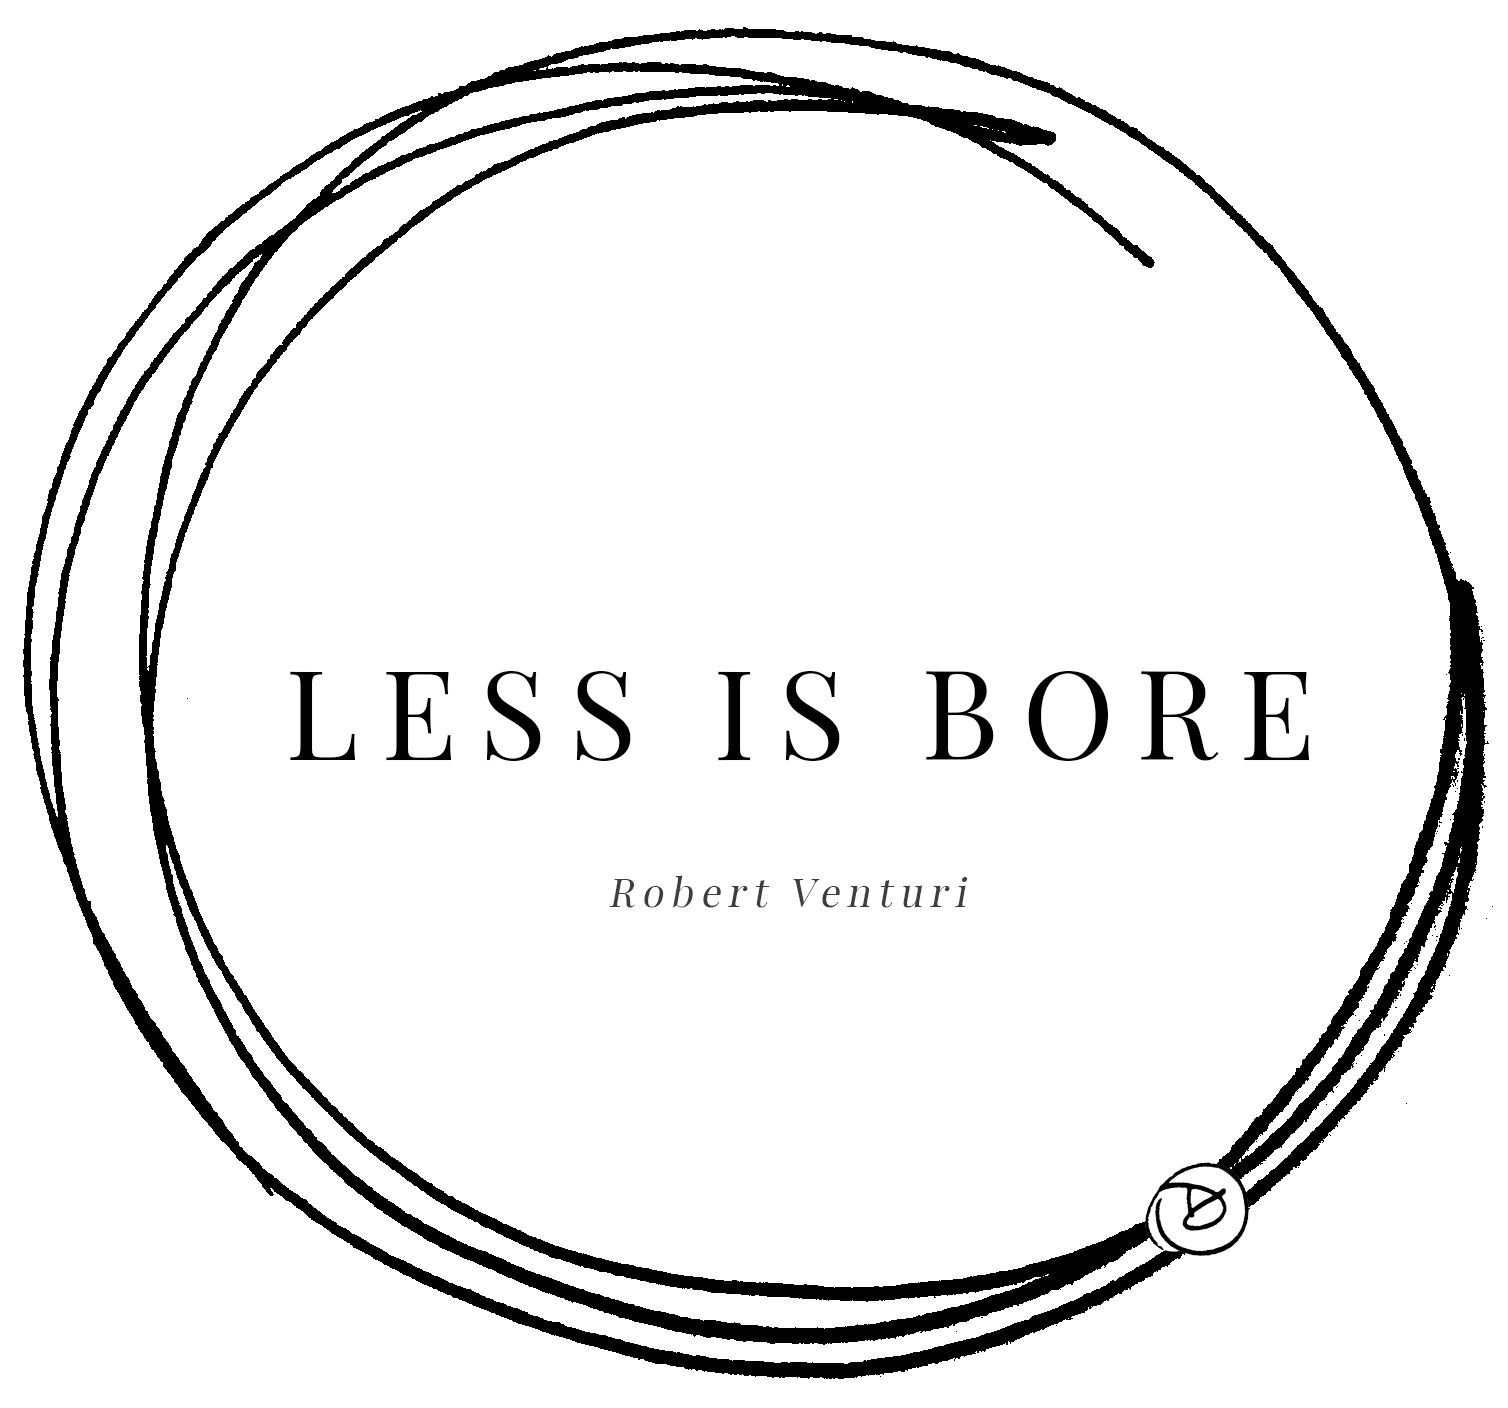 less-is-bore